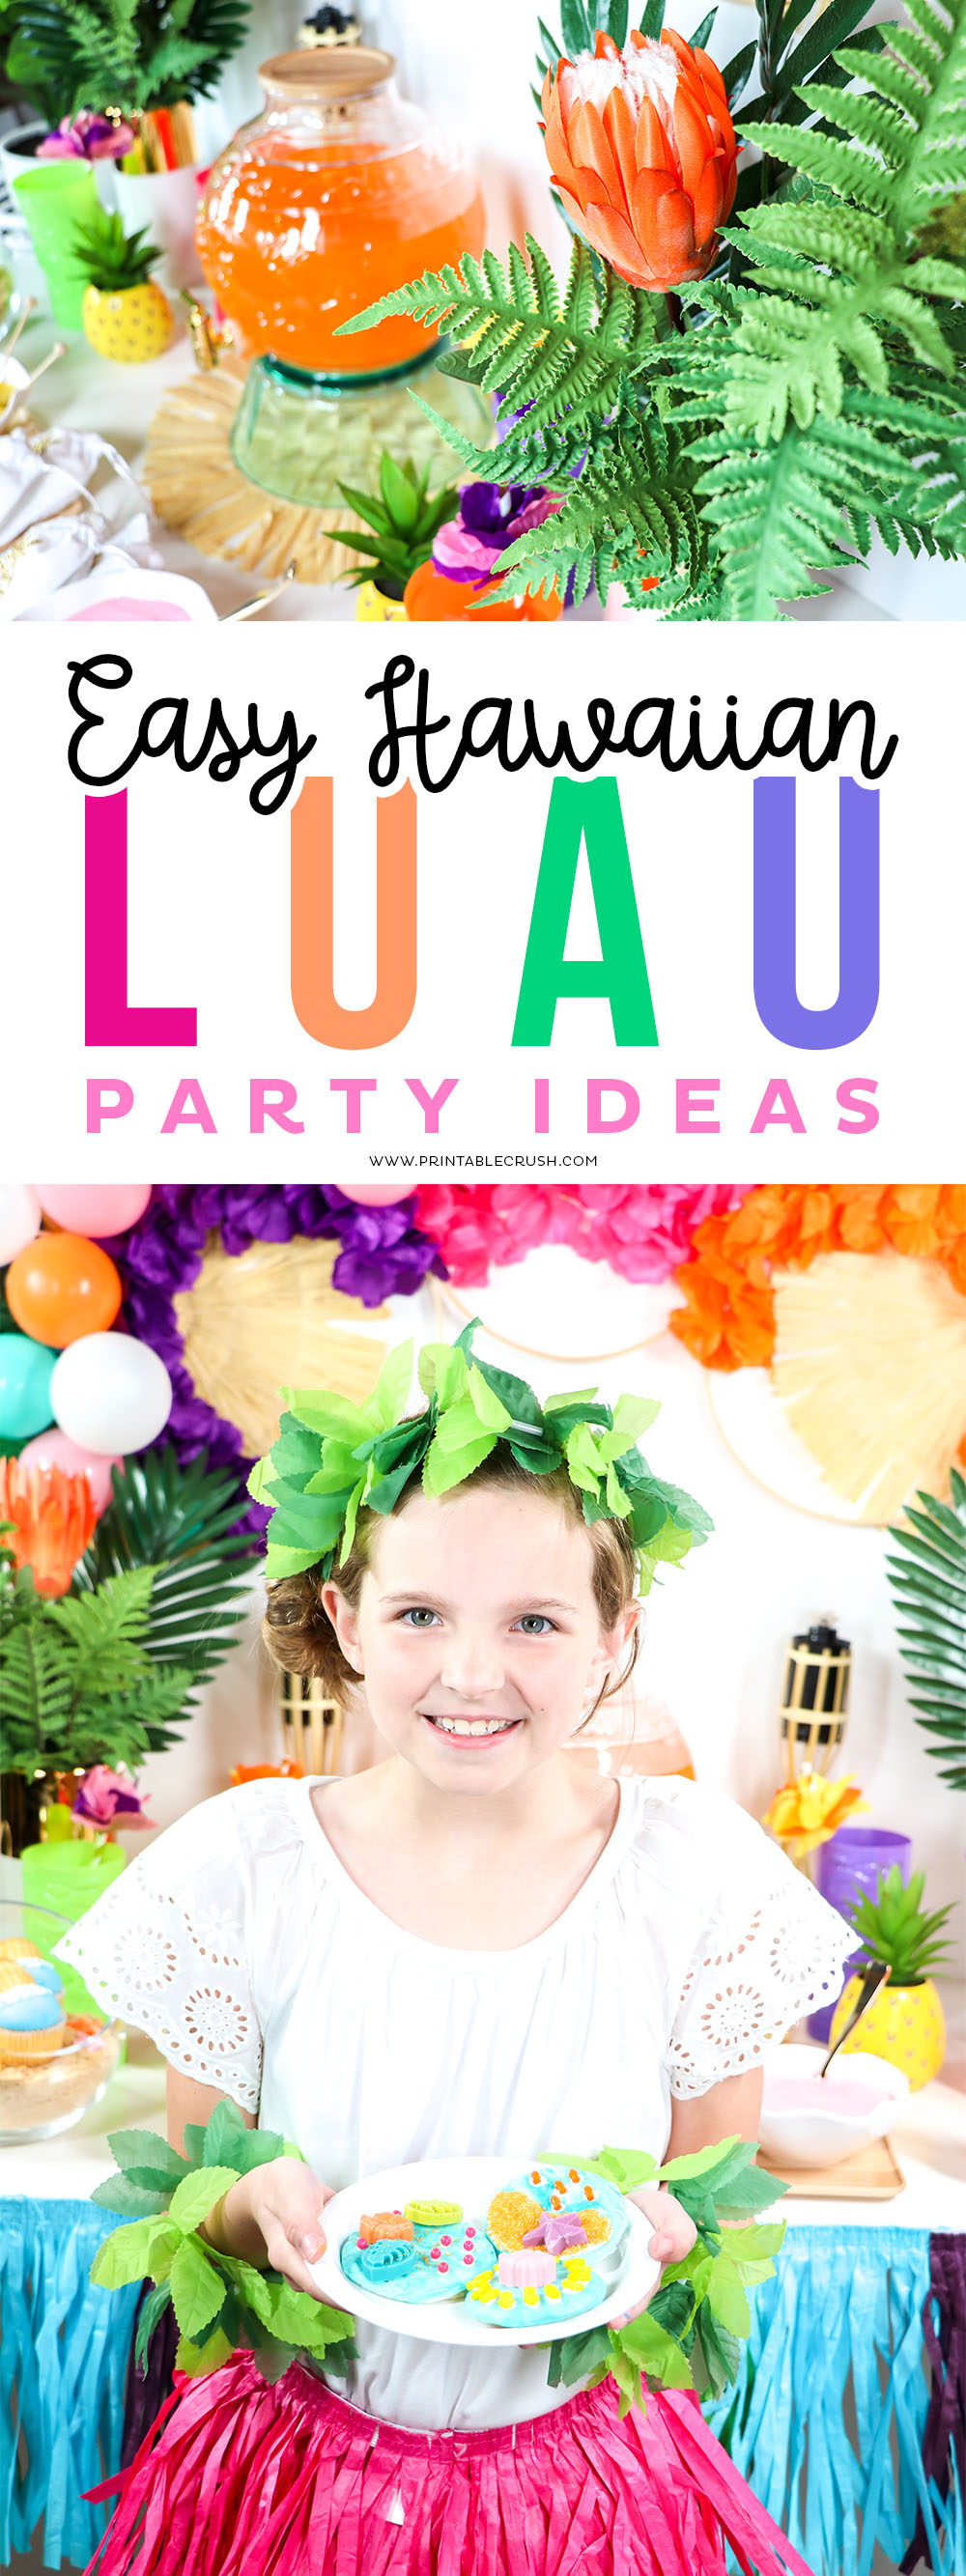 Throw a Luau Party in ONE DAY wit these Easy Hawaiian Luau Party Ideas from Printable Crush!